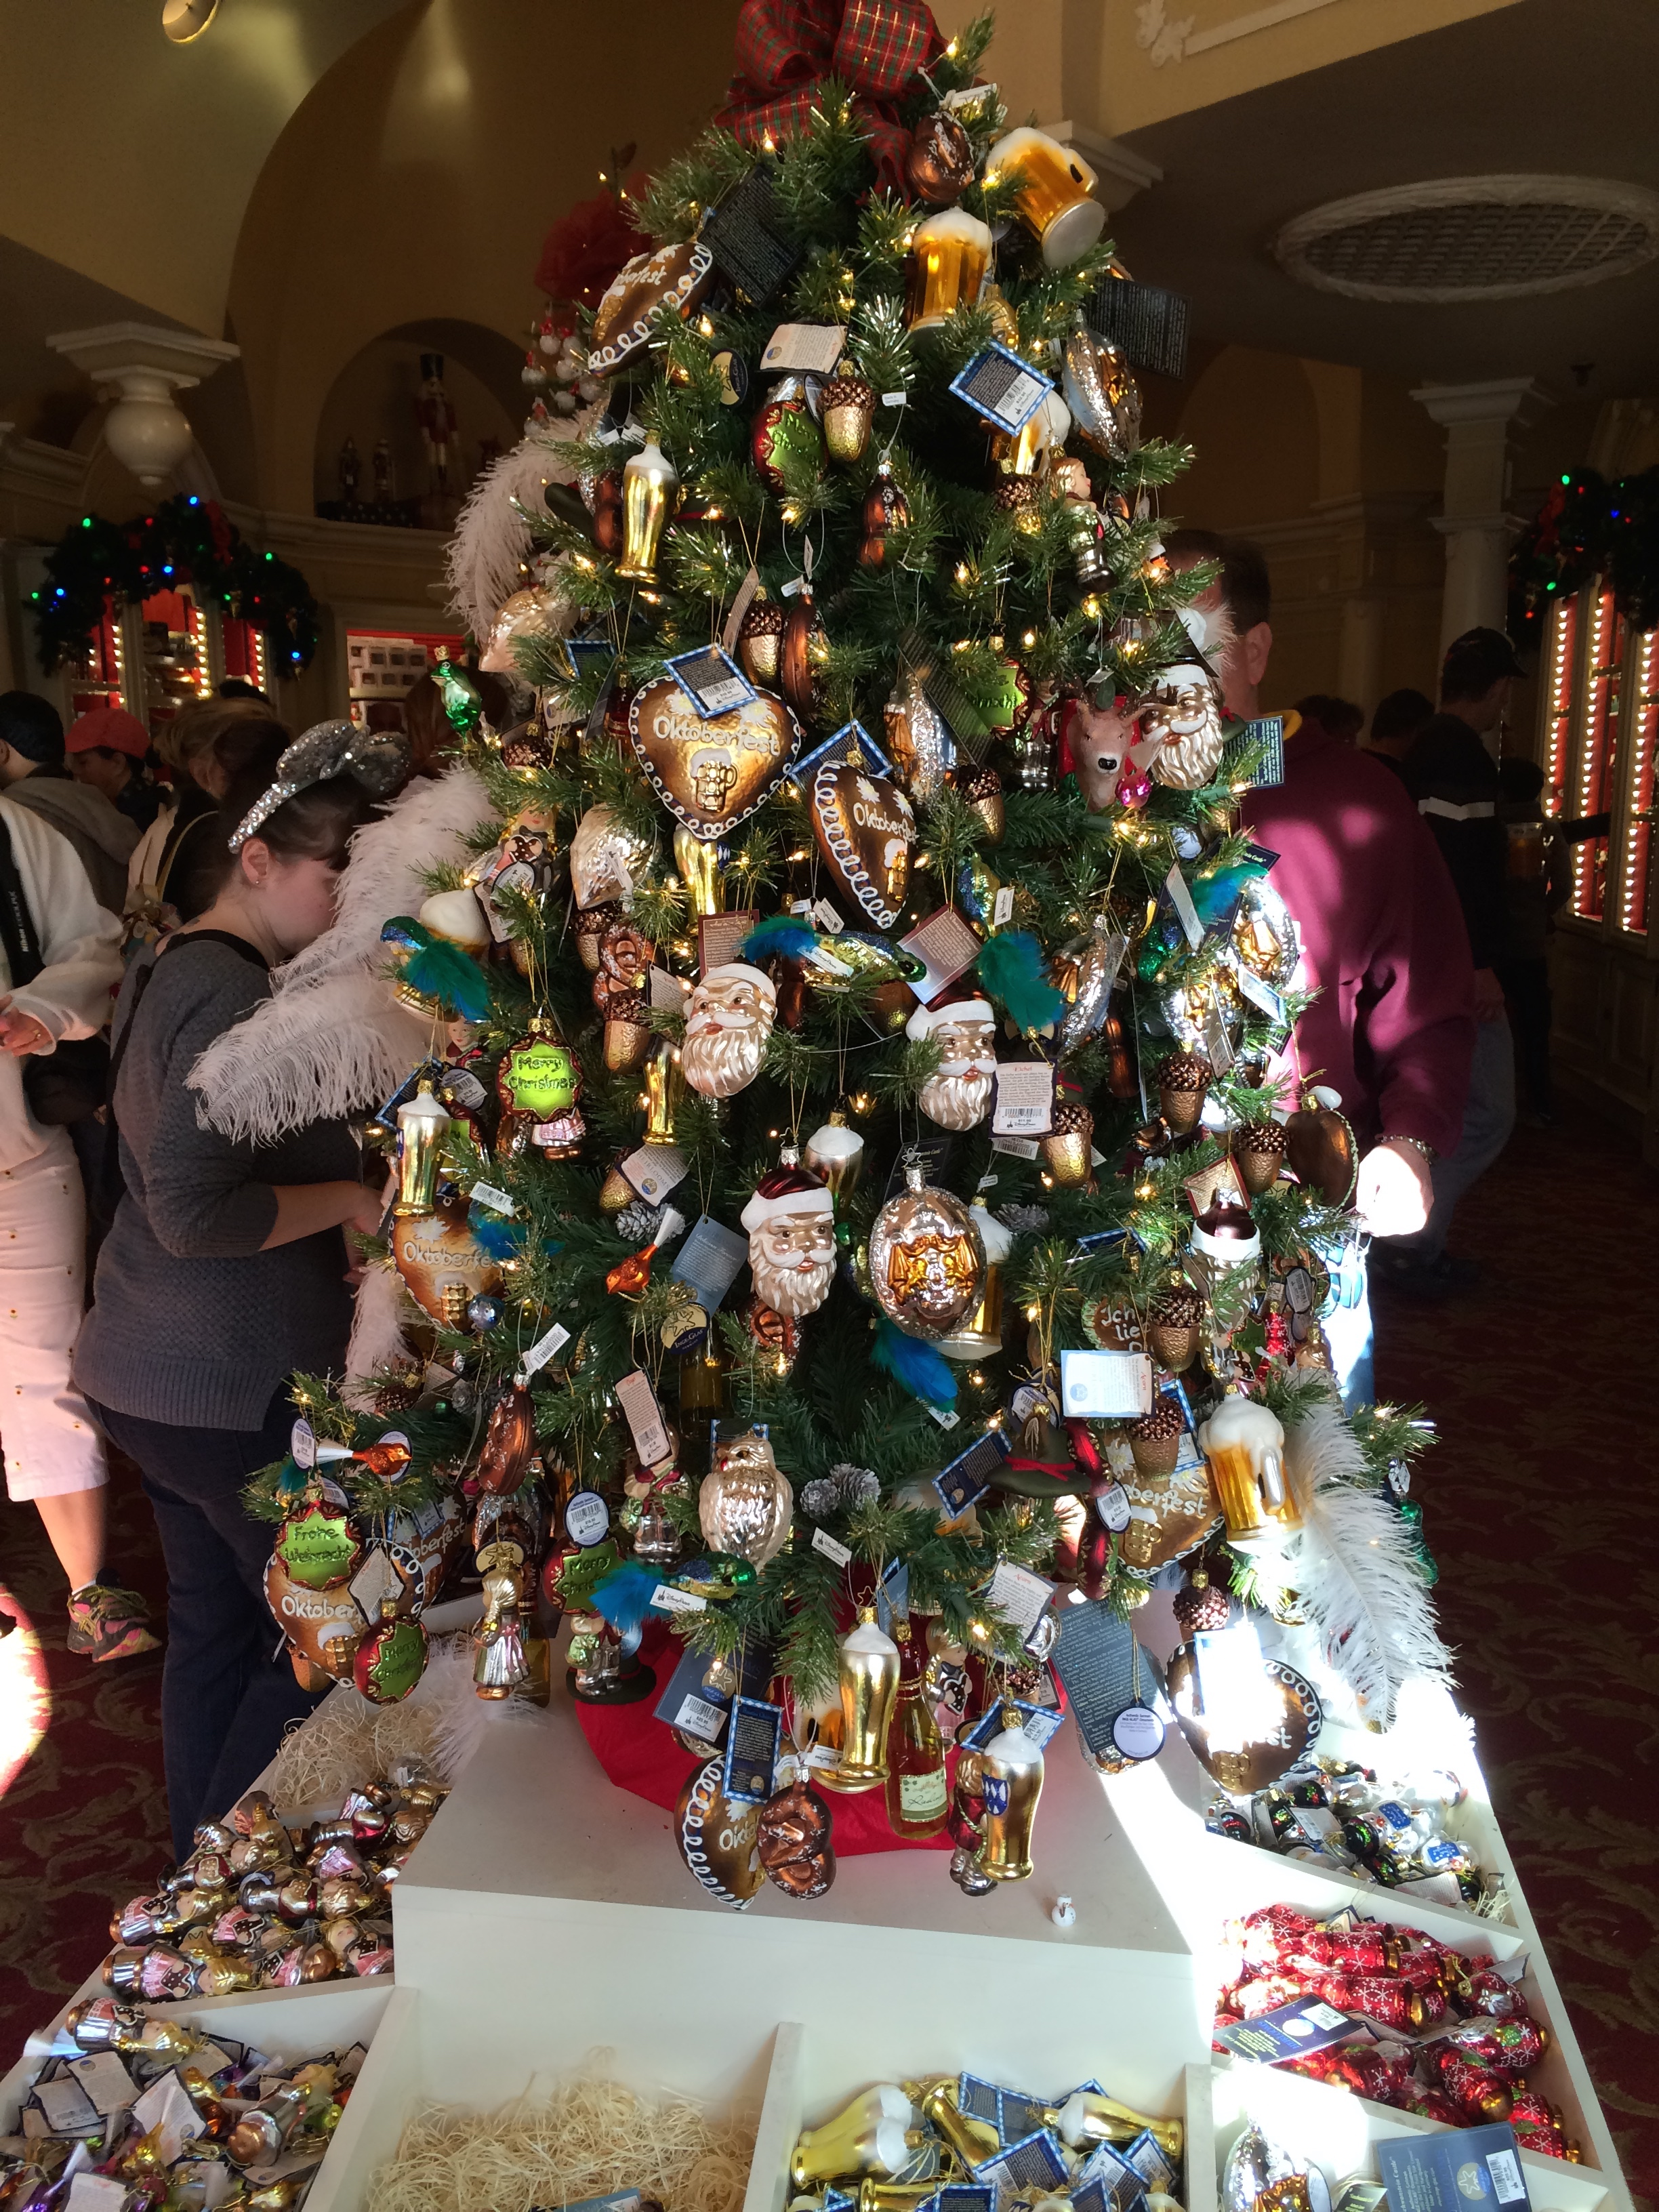 Holiday Decorations at Walt Disney World Resort - Run The Great Wide Somewhere